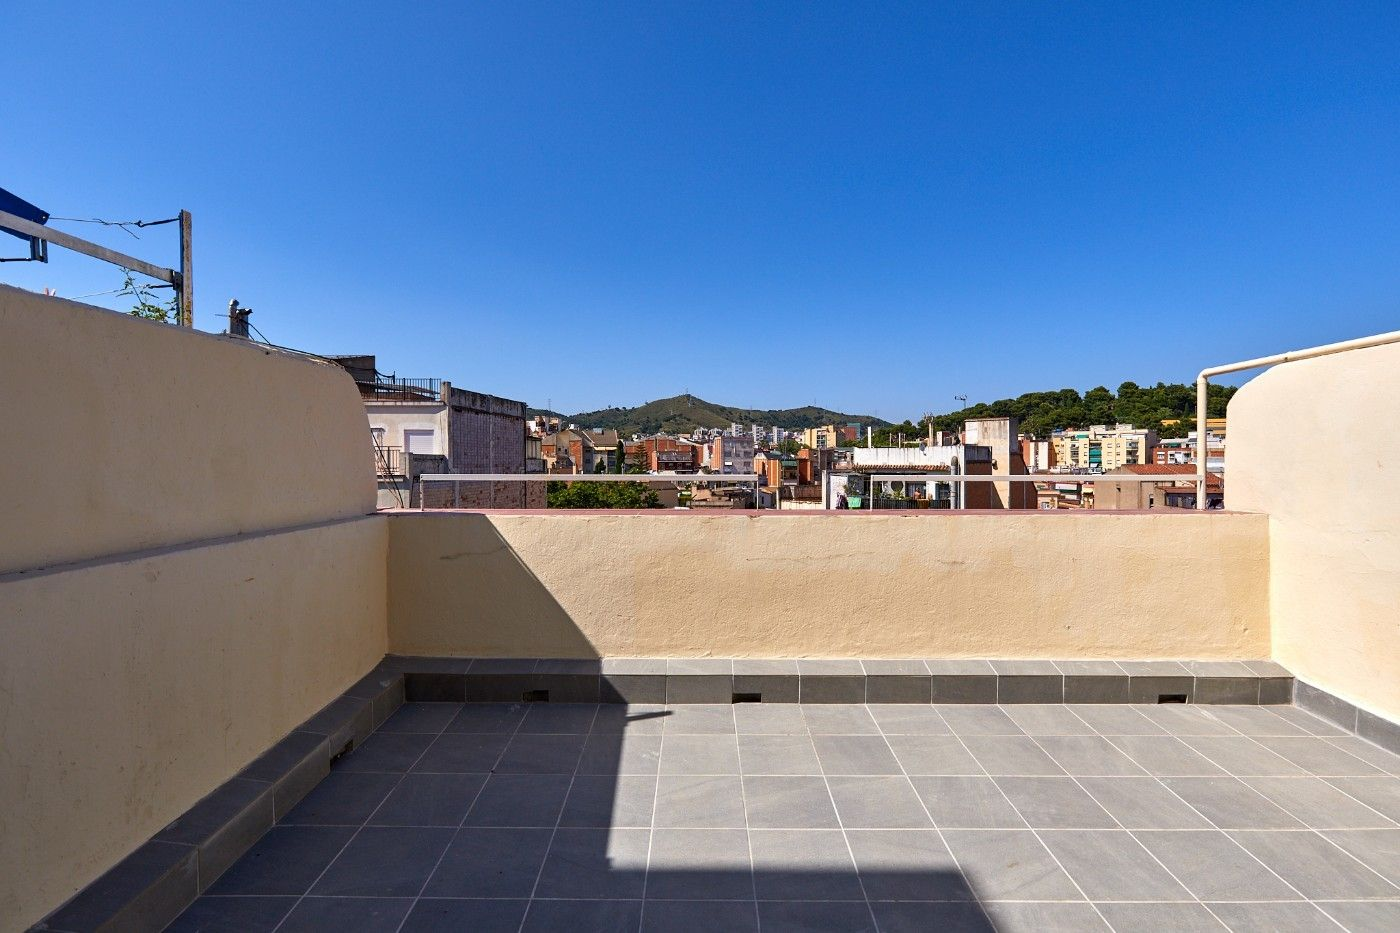 Penthouse in Carrer tajo, 51. Obra nueva